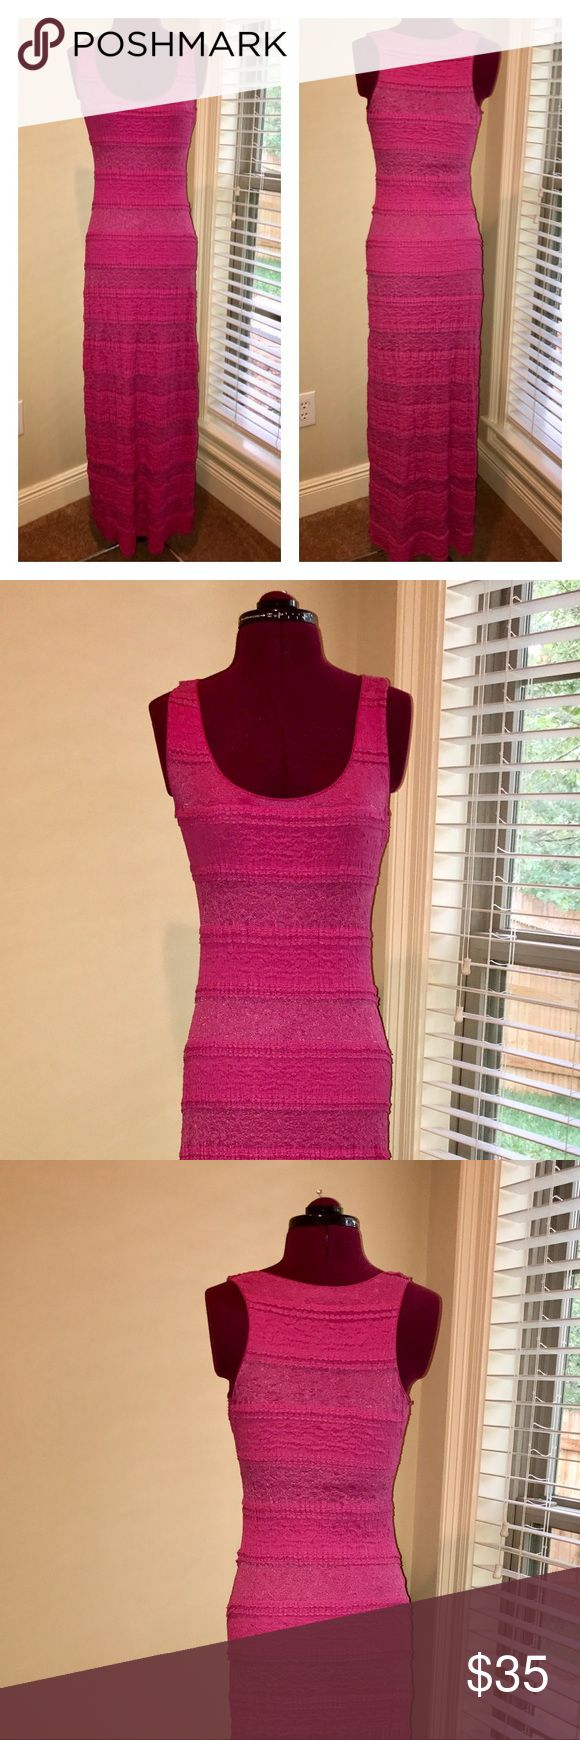 """🎉Host Pick🎉 C&V Maxi Dress-Make an Offer Size Small Chelsea & Violet Lace Maxi Dress.  In great pre-owned condition.  Tiered pink lace dress is fully lined.  Length from shoulder to hem line is 59"""". Chelsea & Violet Dresses Maxi"""